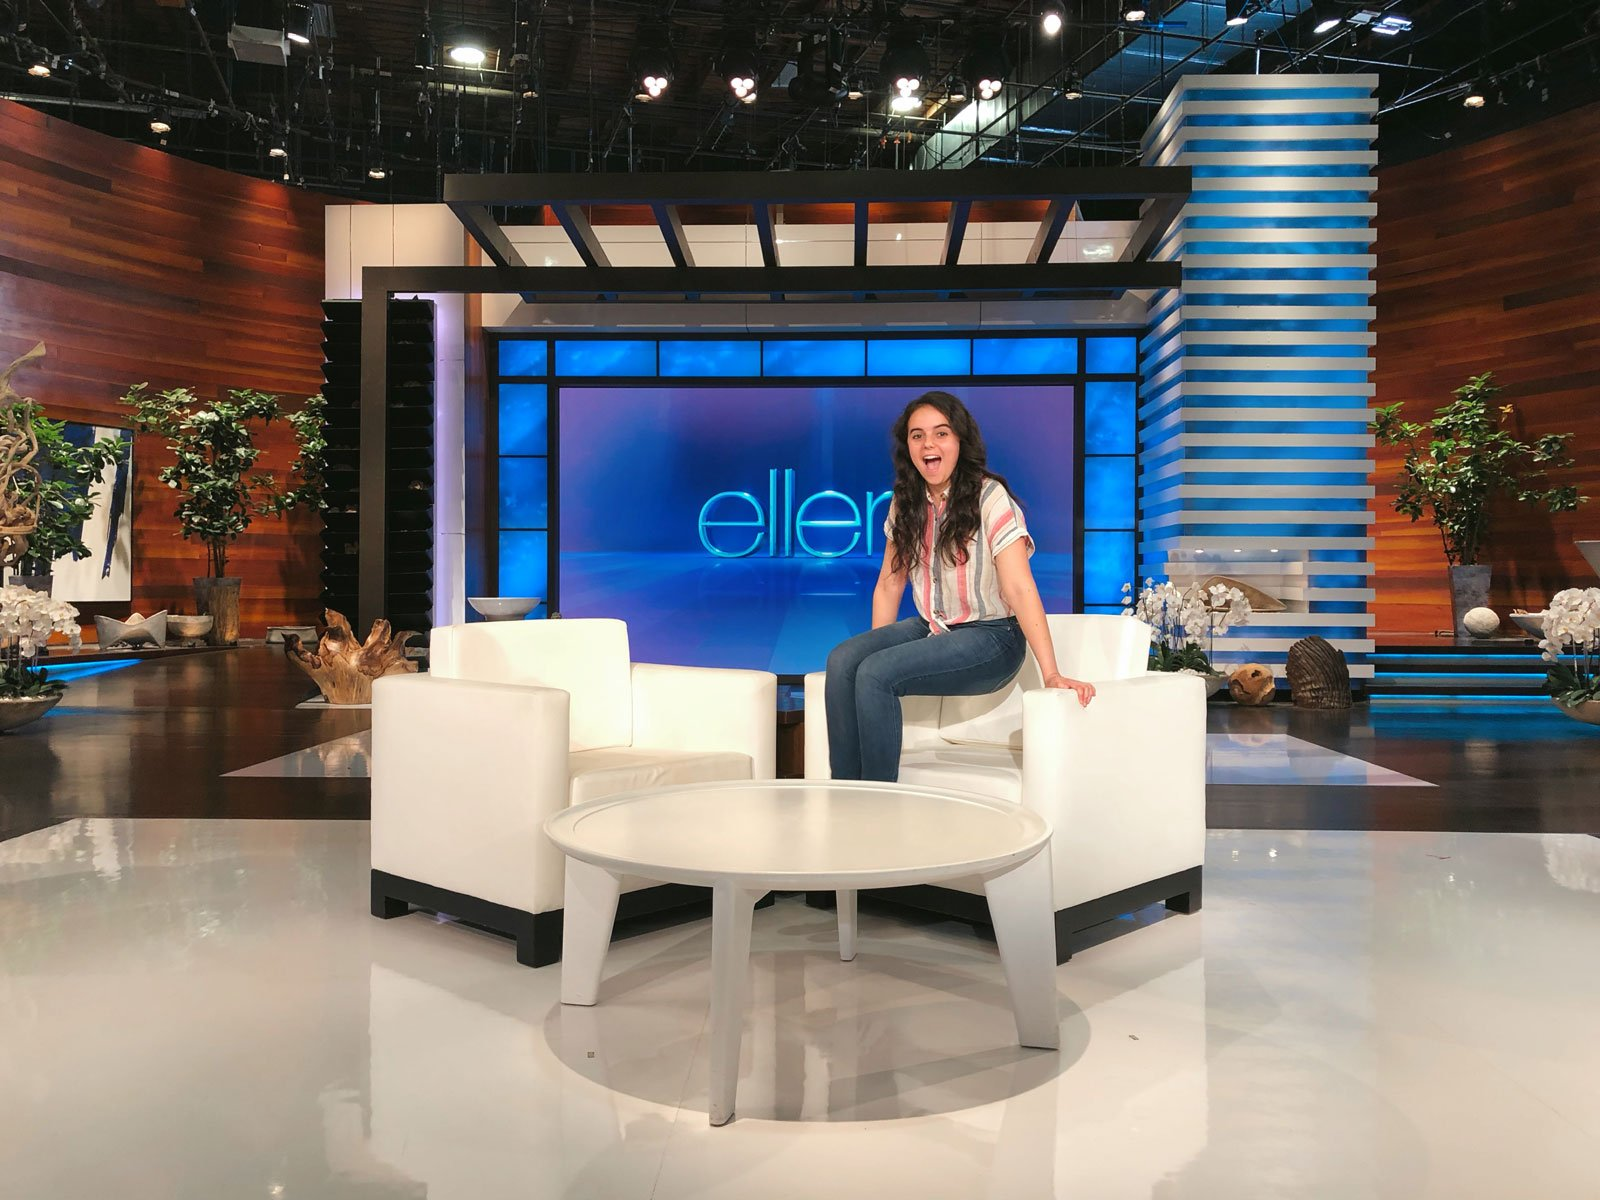 A student sits in the chair on the Ellen show